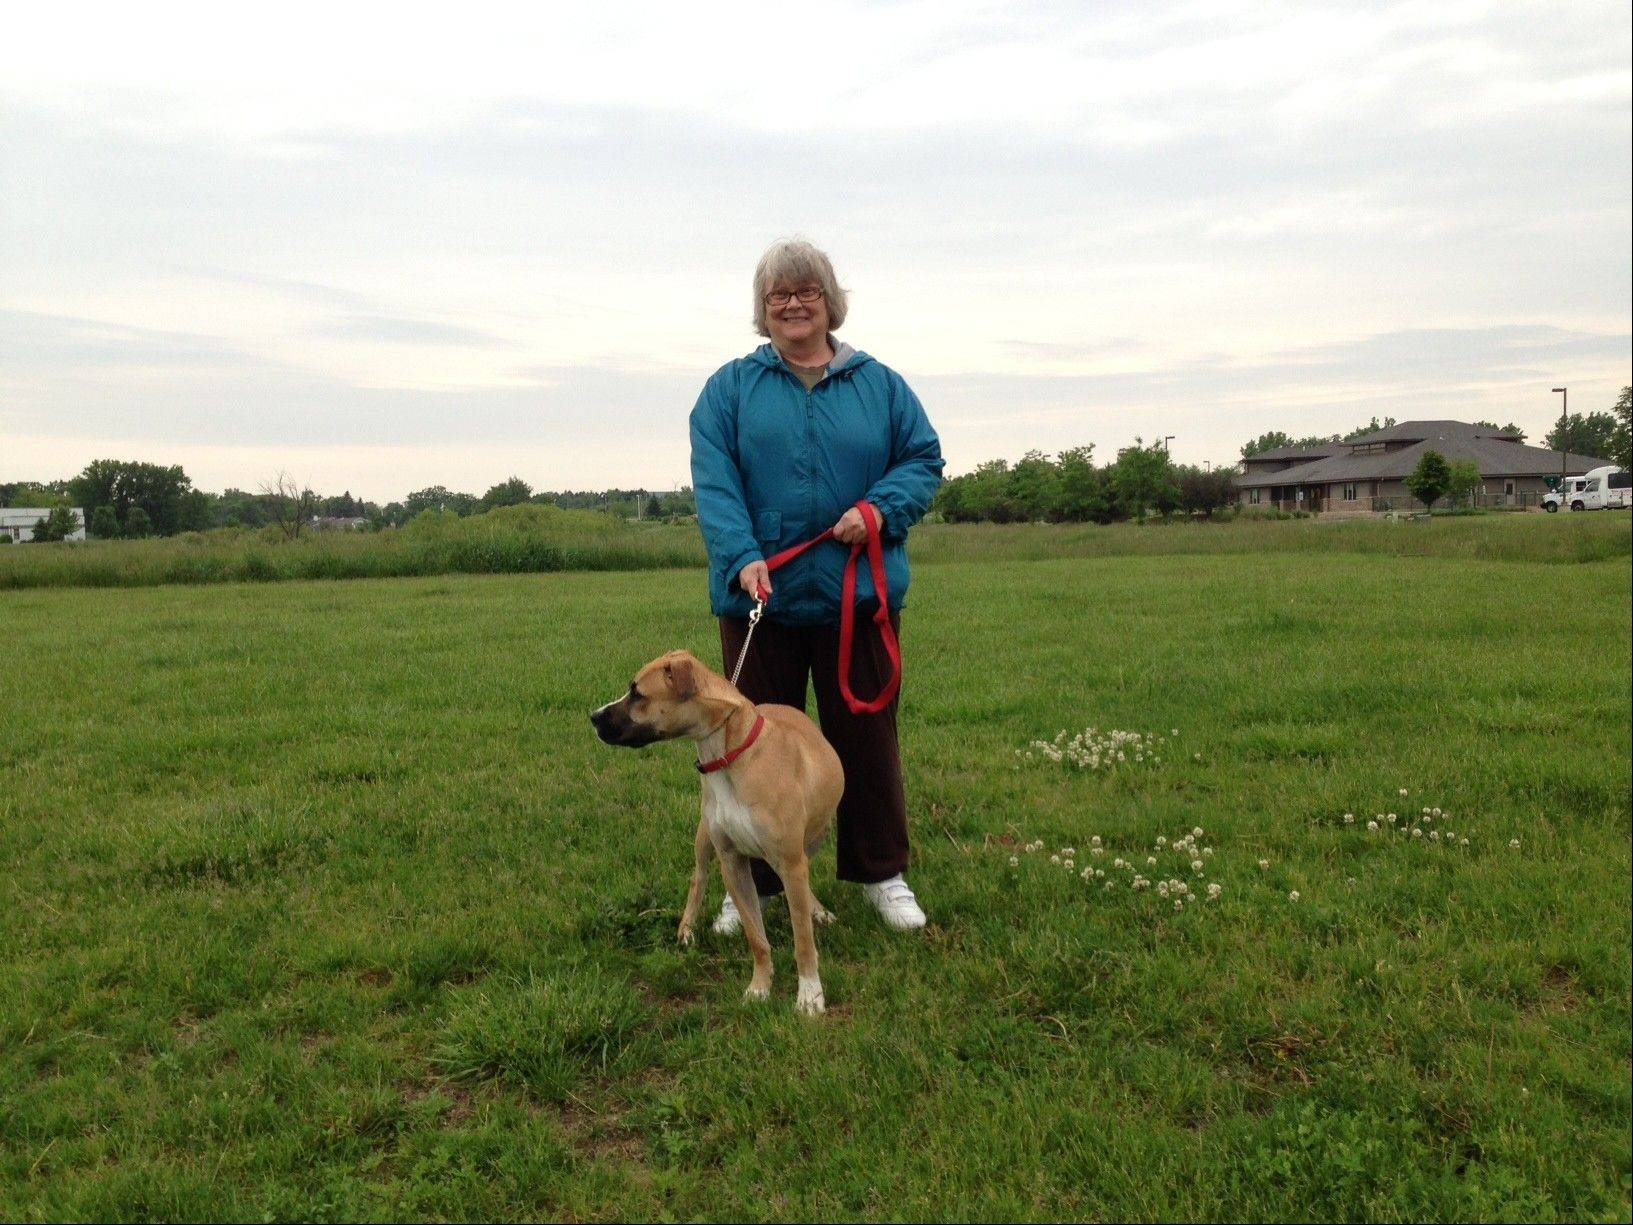 Helping Paws Animal Shelter needs volunteers, like Lynne Geuzendam walking Bounder, to help care for the animals. Volunteer orientations will be held June 18 and July 7.